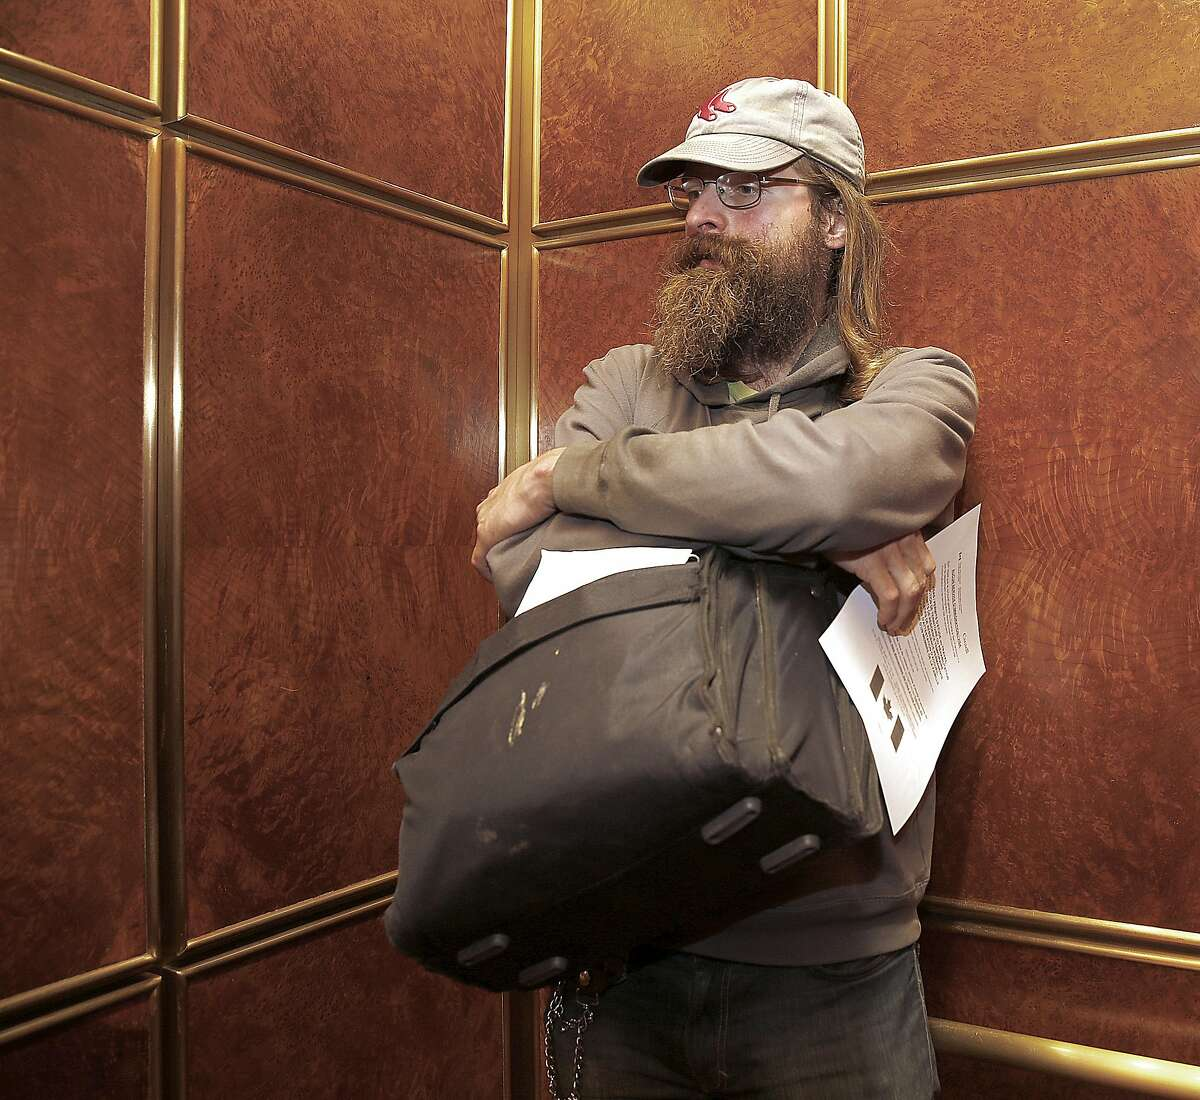 James Conrad goes to the Canada Consulate to ask for an immigration form on Wednesday, November 9, in San Francisco, Calif.